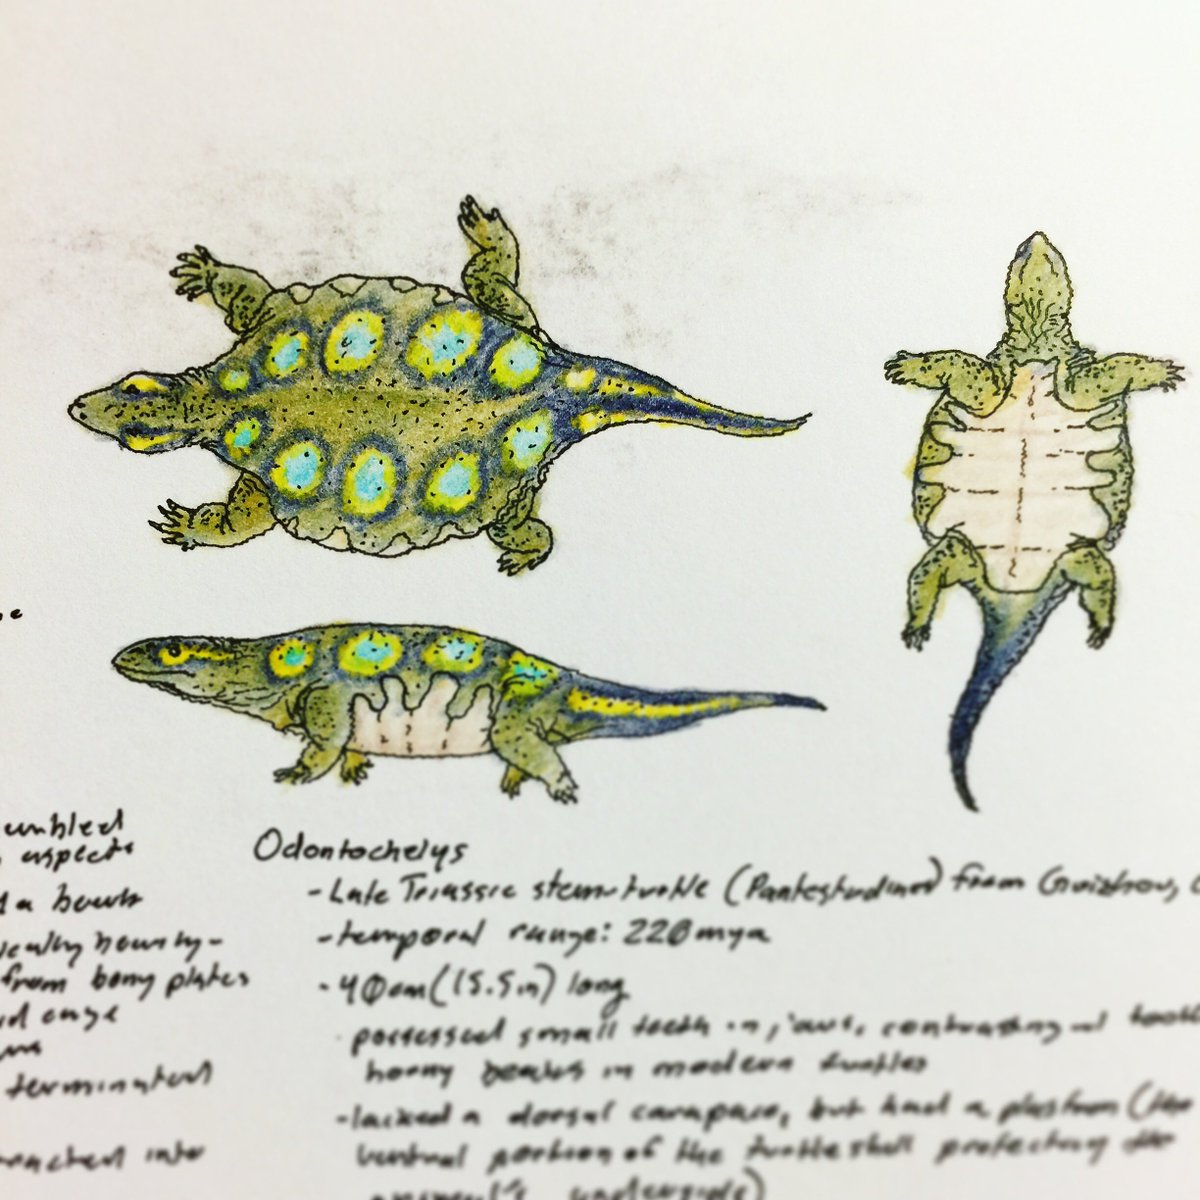 Yesterday was #WorldTurtleDay but today is #FossilFriday so here's some turtles. They are very challenging at first but ultimately very rewarding #paleoart subjects. Here's Odontochelys, Alienochelys & Ocepechelon, Idiochelys, & Meiolania <br>http://pic.twitter.com/rmBa0bPvJJ